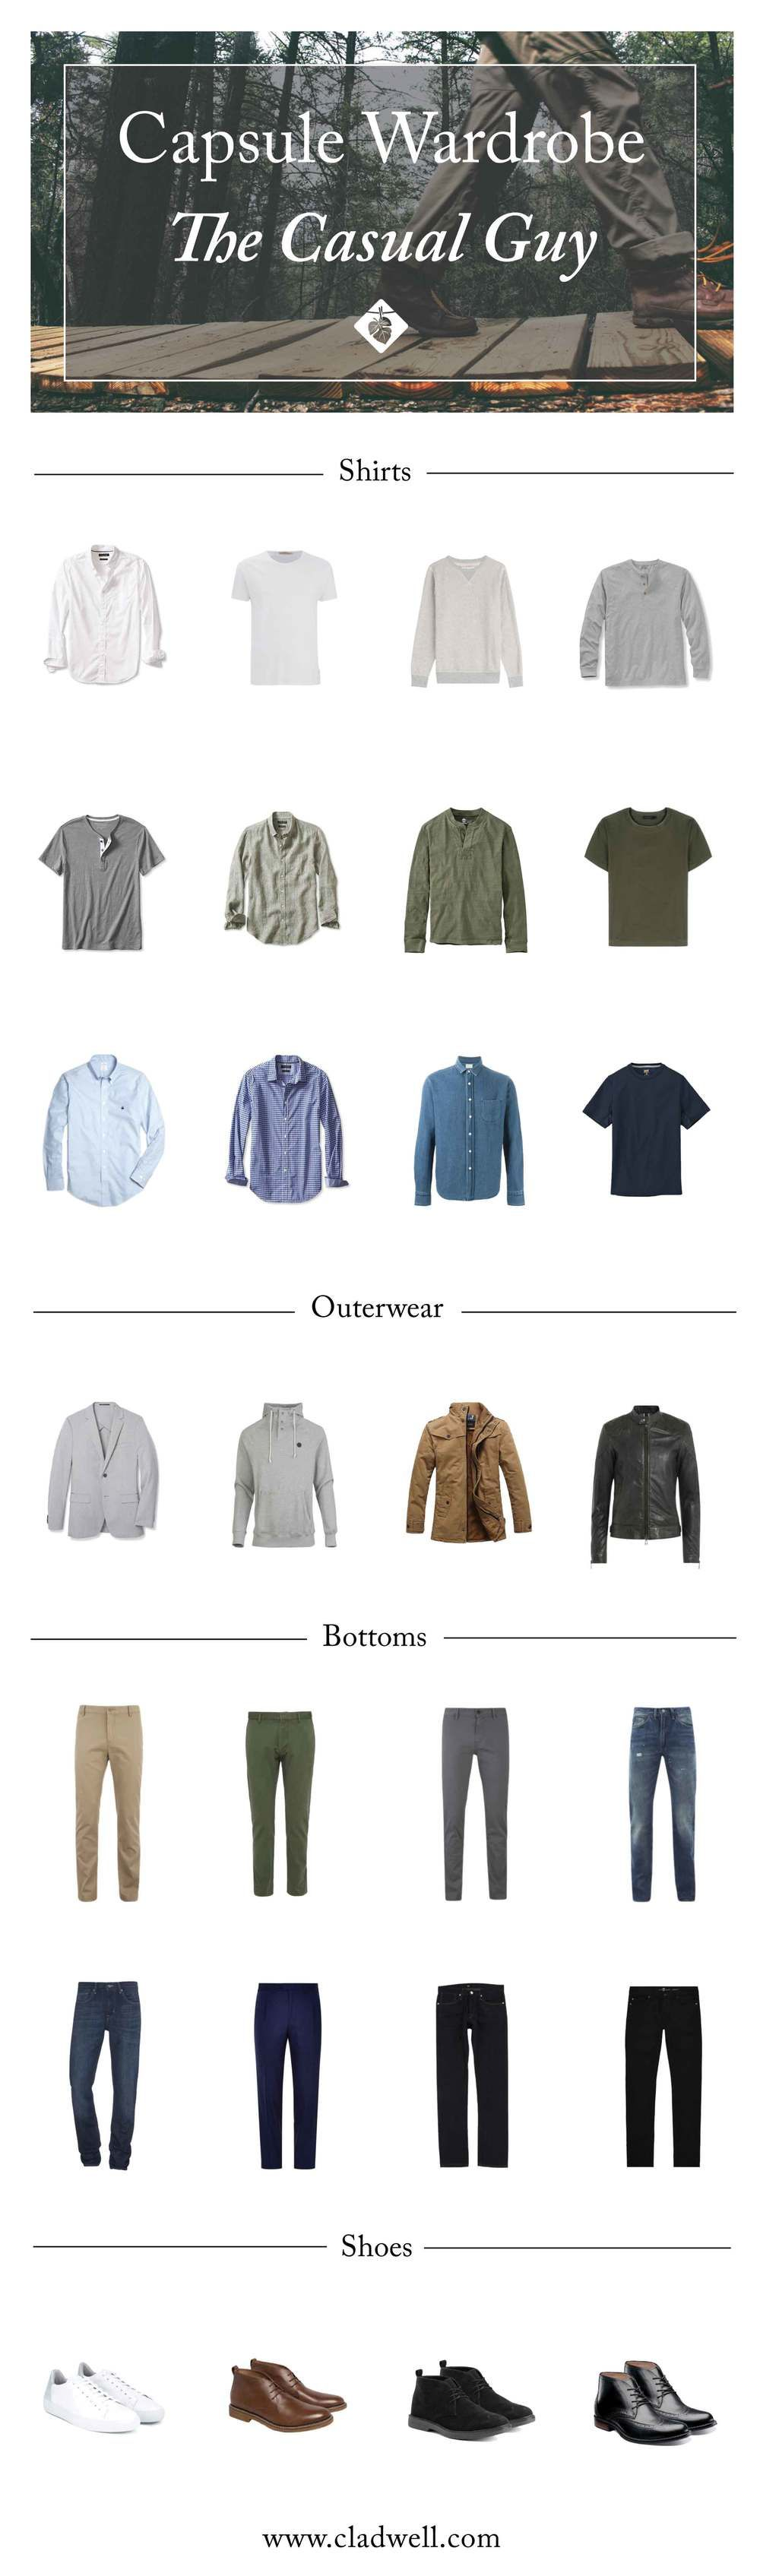 Guardaroba Uomo Casual A Capsule For The Casual Guy Cladwell Guide Guardaroba Nel